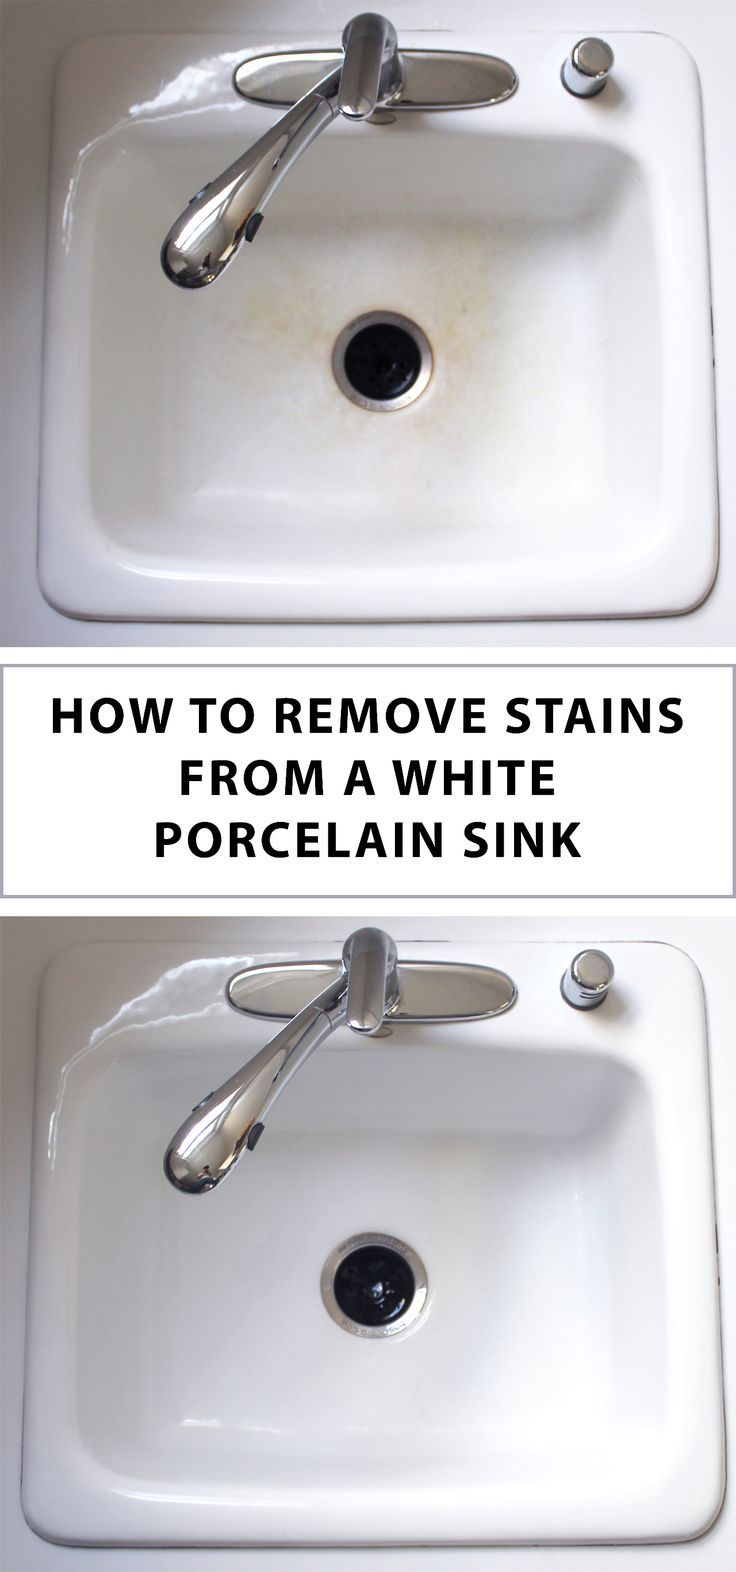 How To Clean A Kitchen Sink In 3 Minutes Porcelain Kitchen Sink